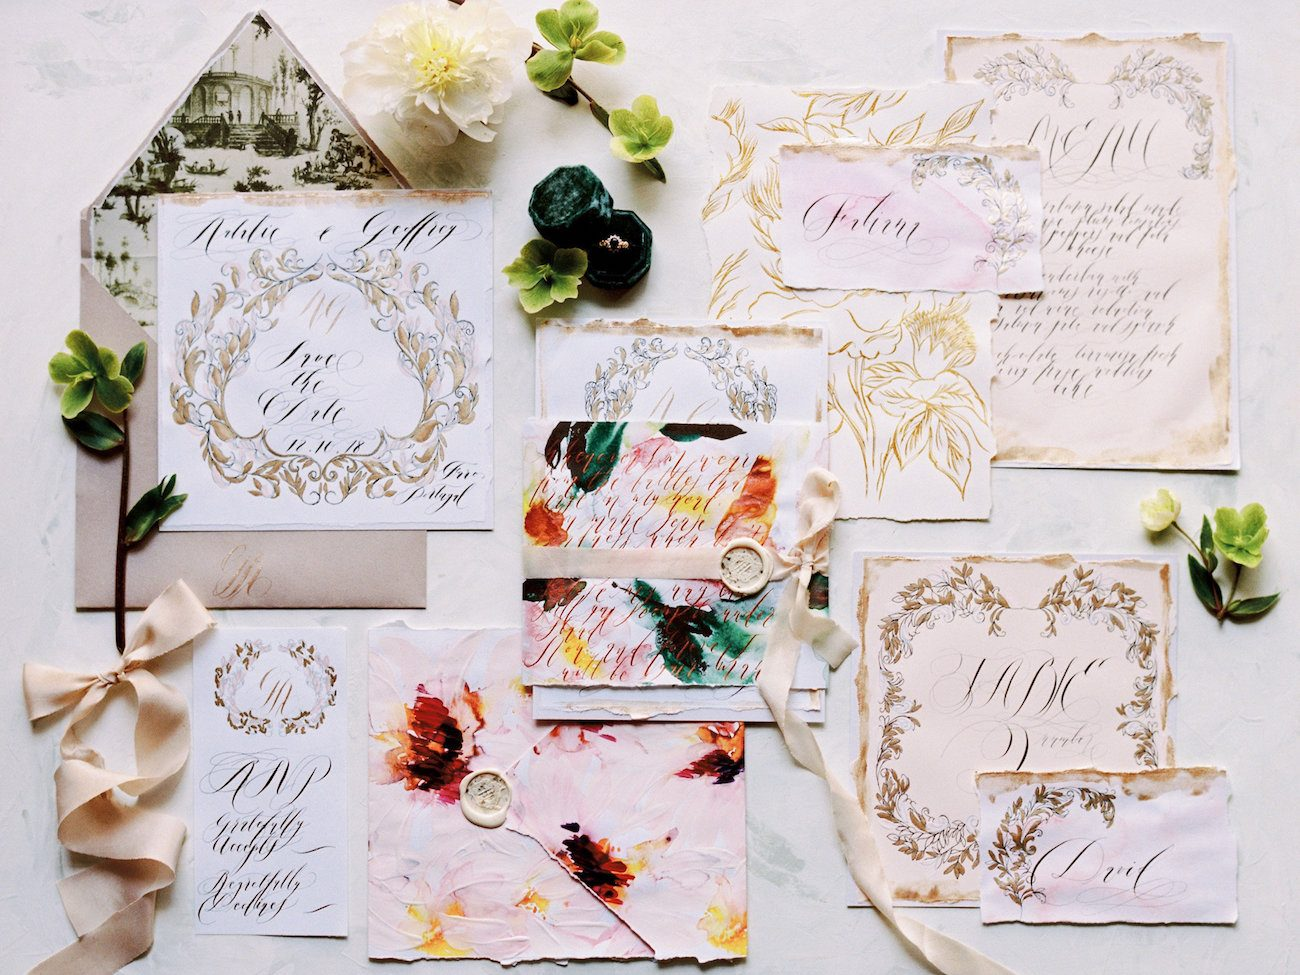 Palace Wedding Inspiration - Entire hand painted wedding invitation suite